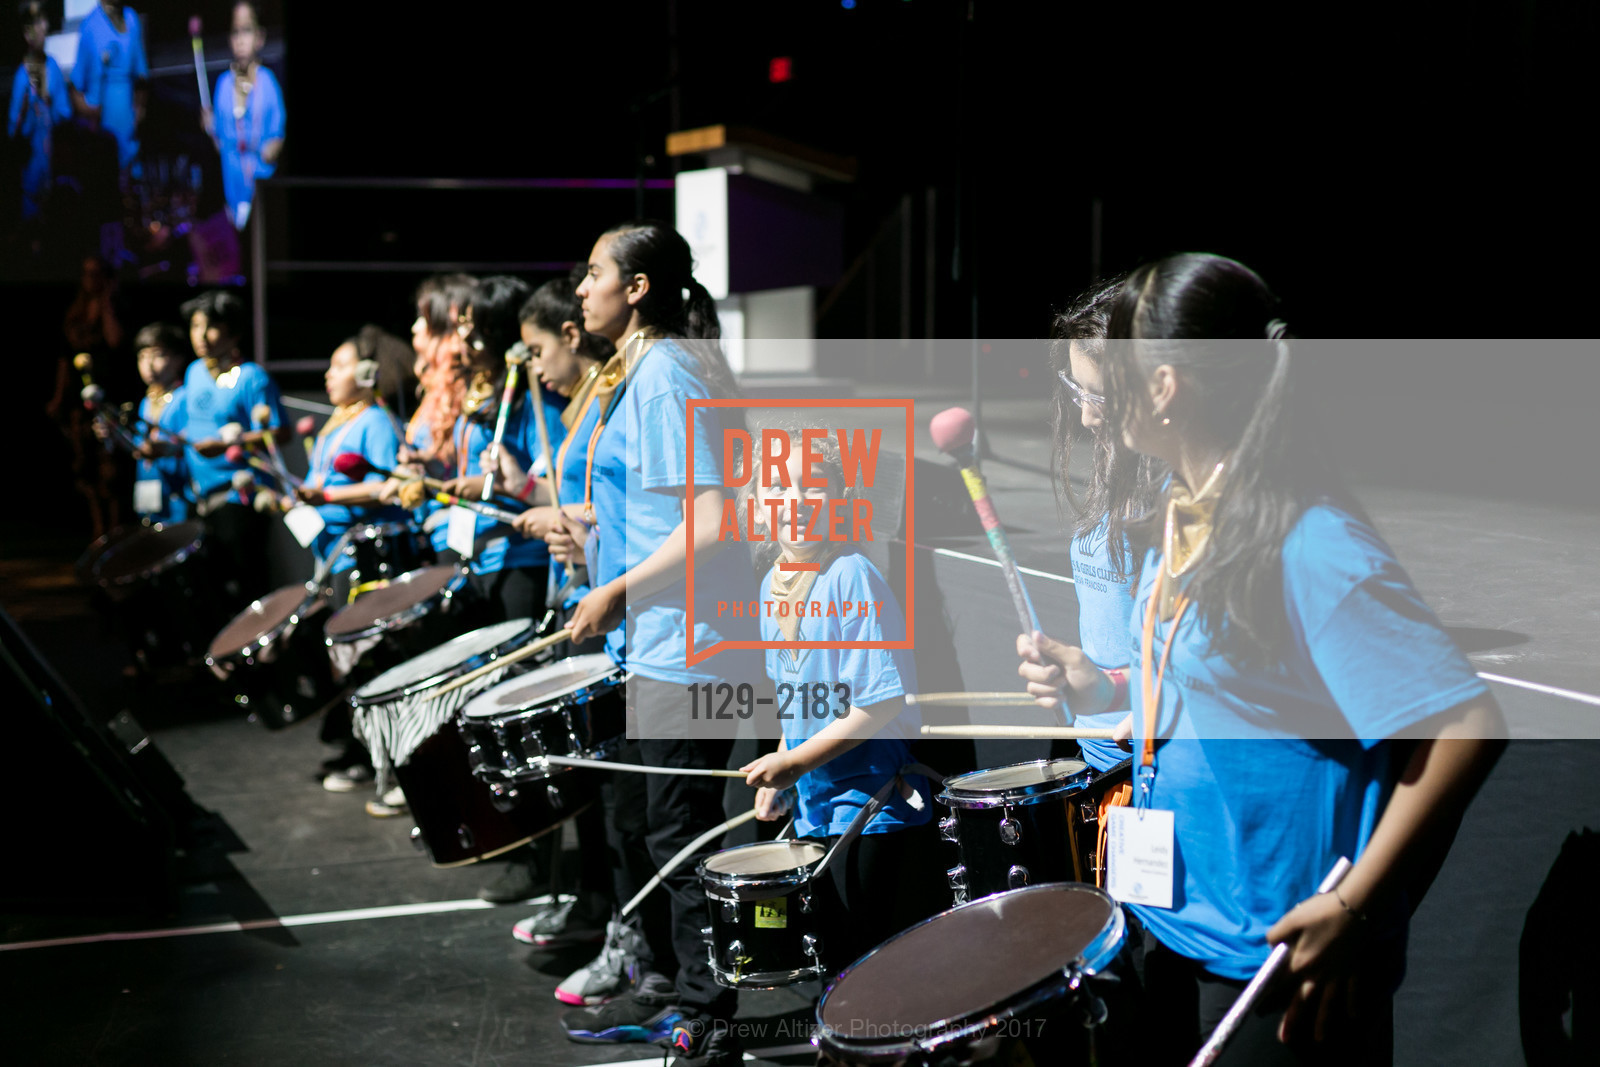 Drumline Performers, Photo #1129-2183